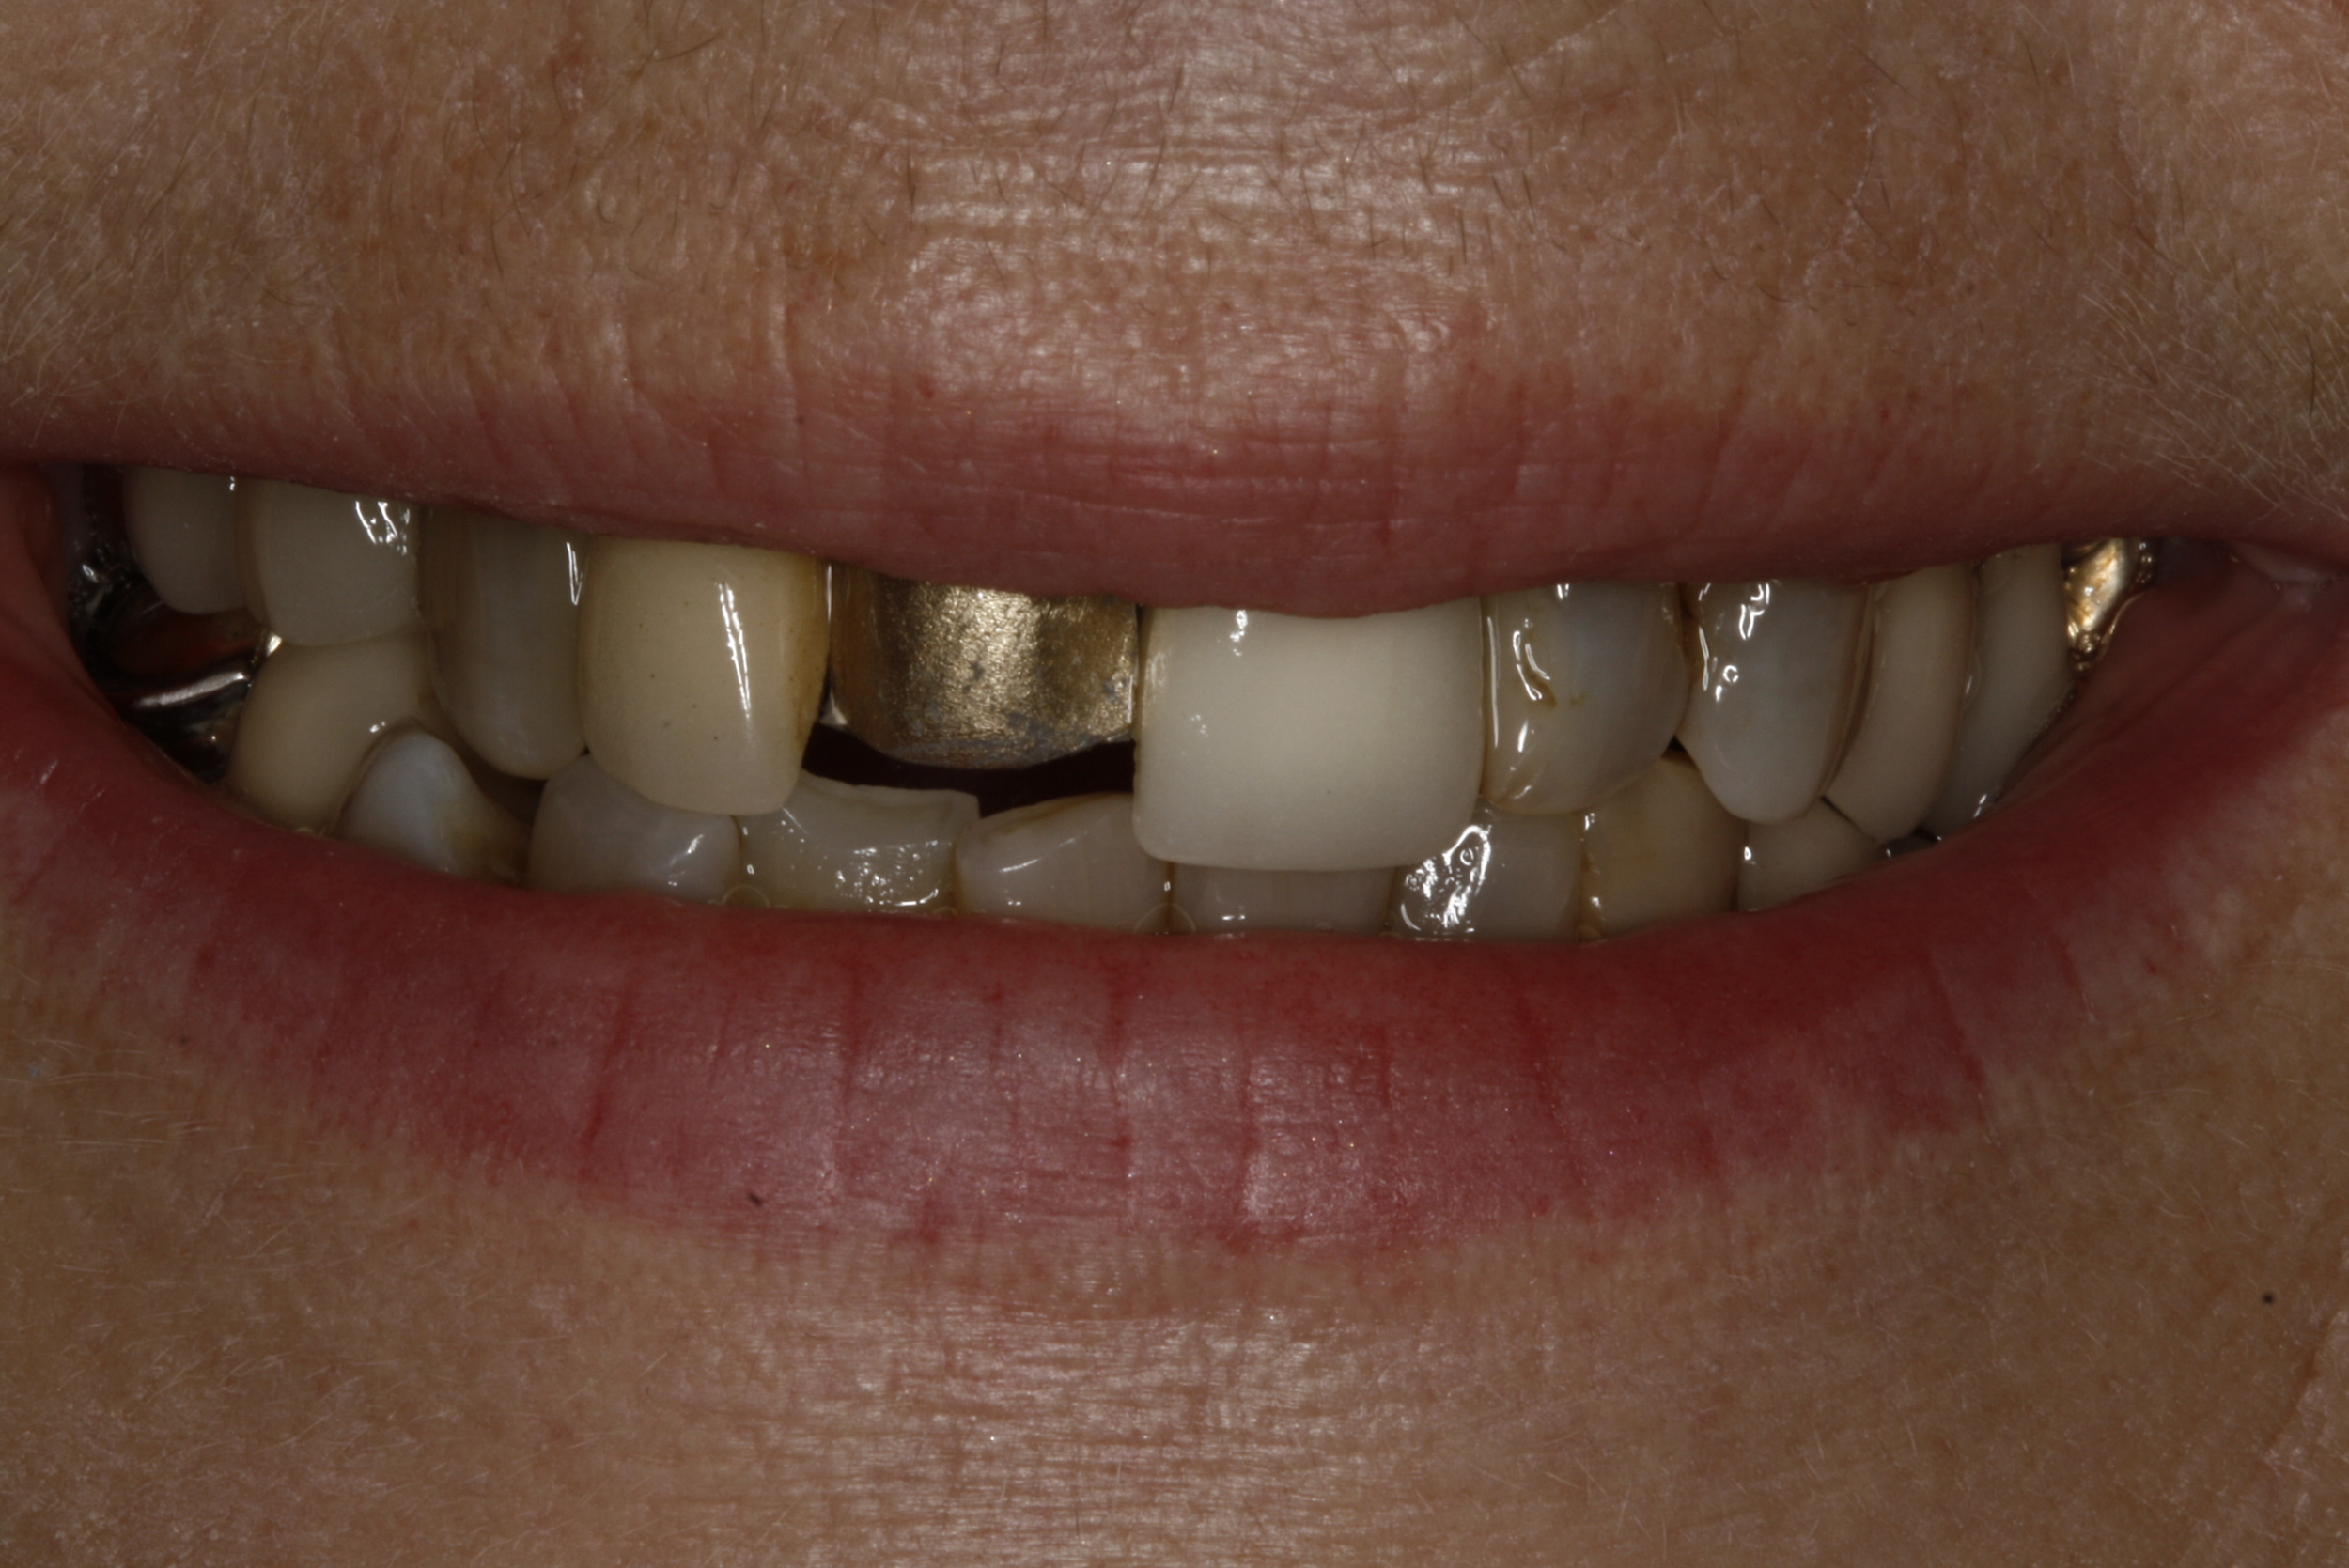 E. Porcelain Crowns.jpg